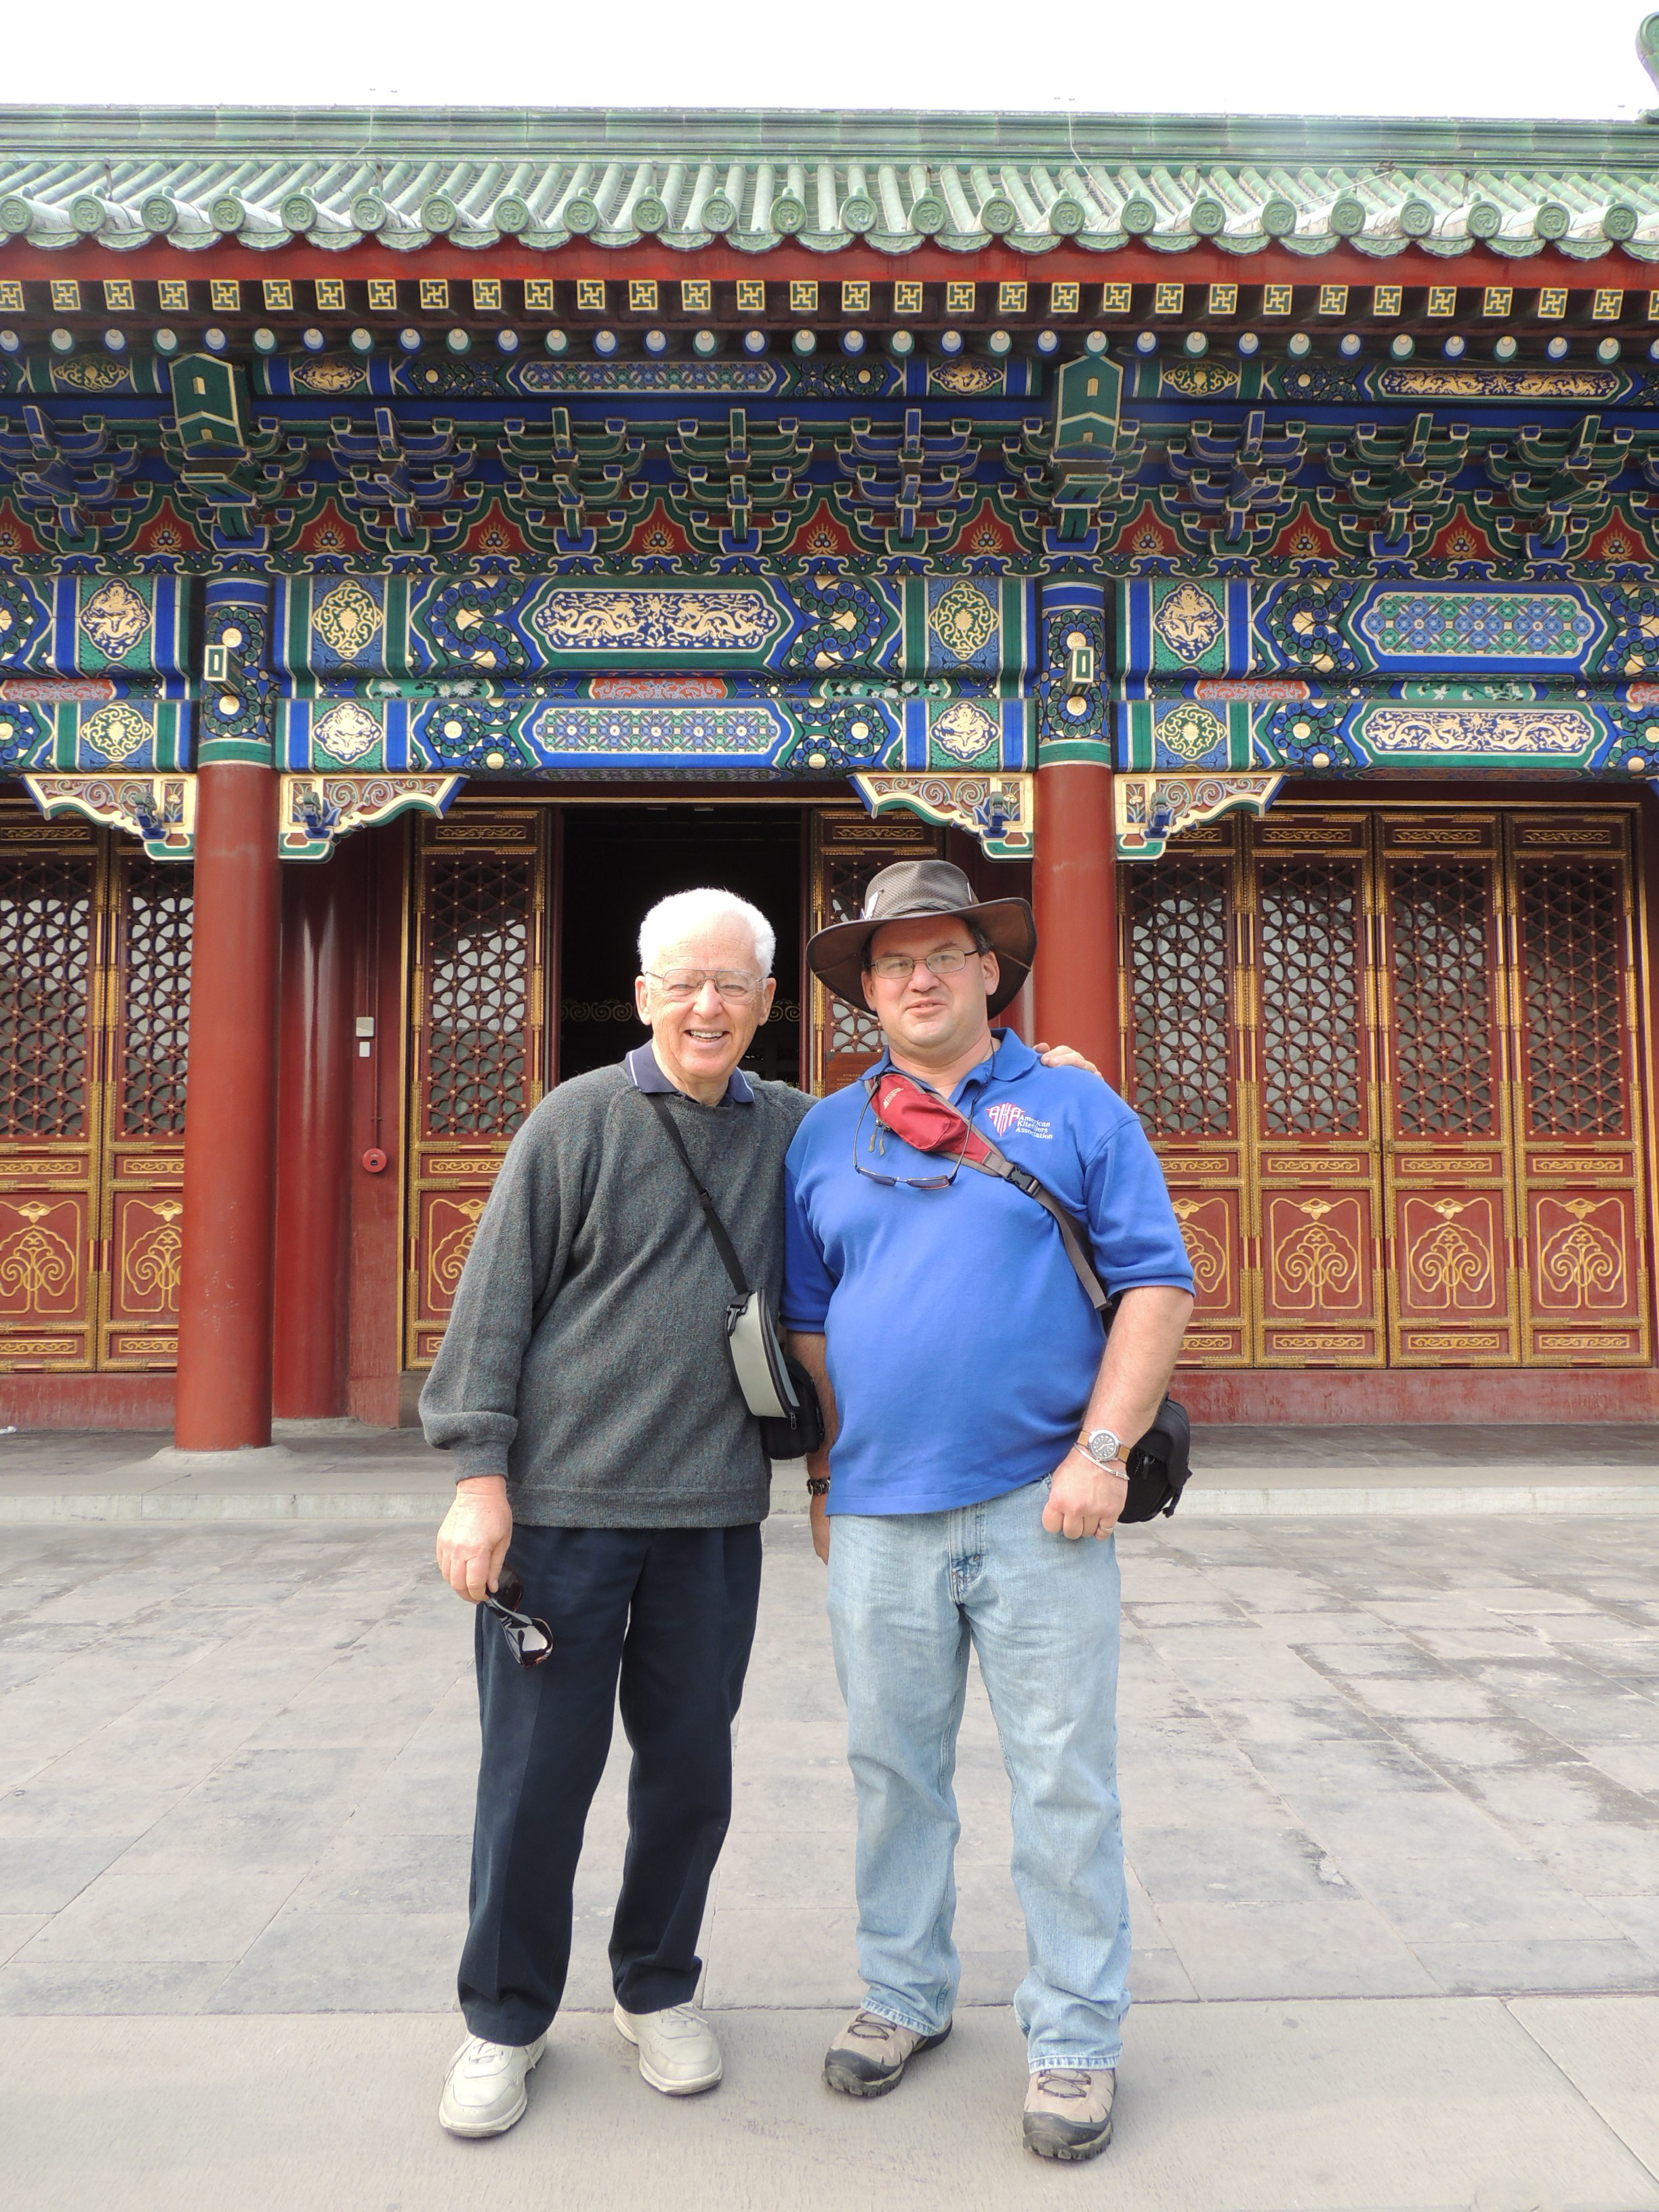 Yosl and Phil Broder during a visit to Chinese kite festivals in 2013.